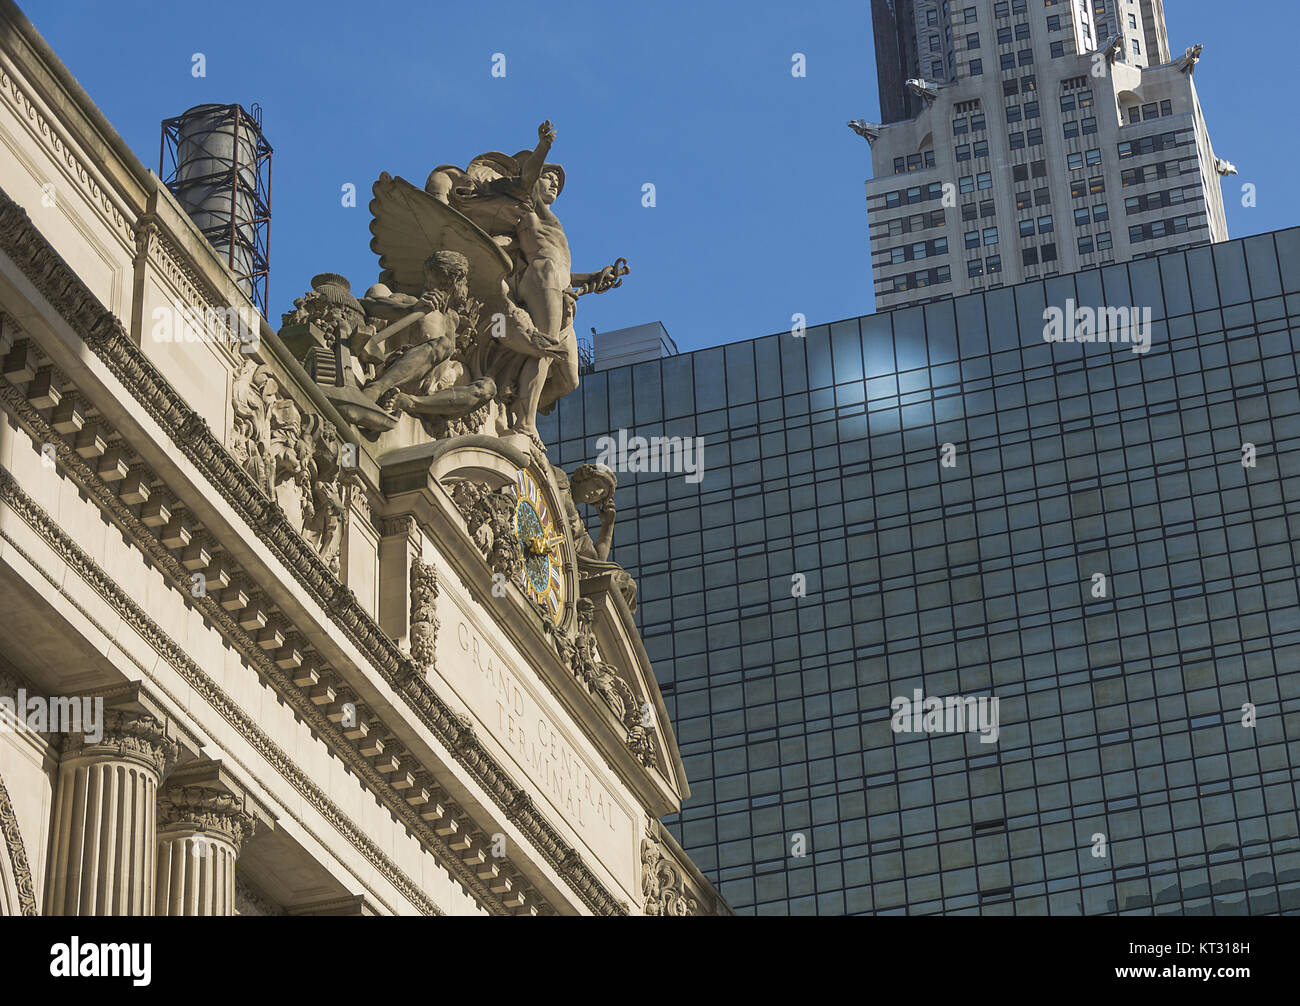 Exterior Clock of Grand Central Terminal Station in New York - Stock Image